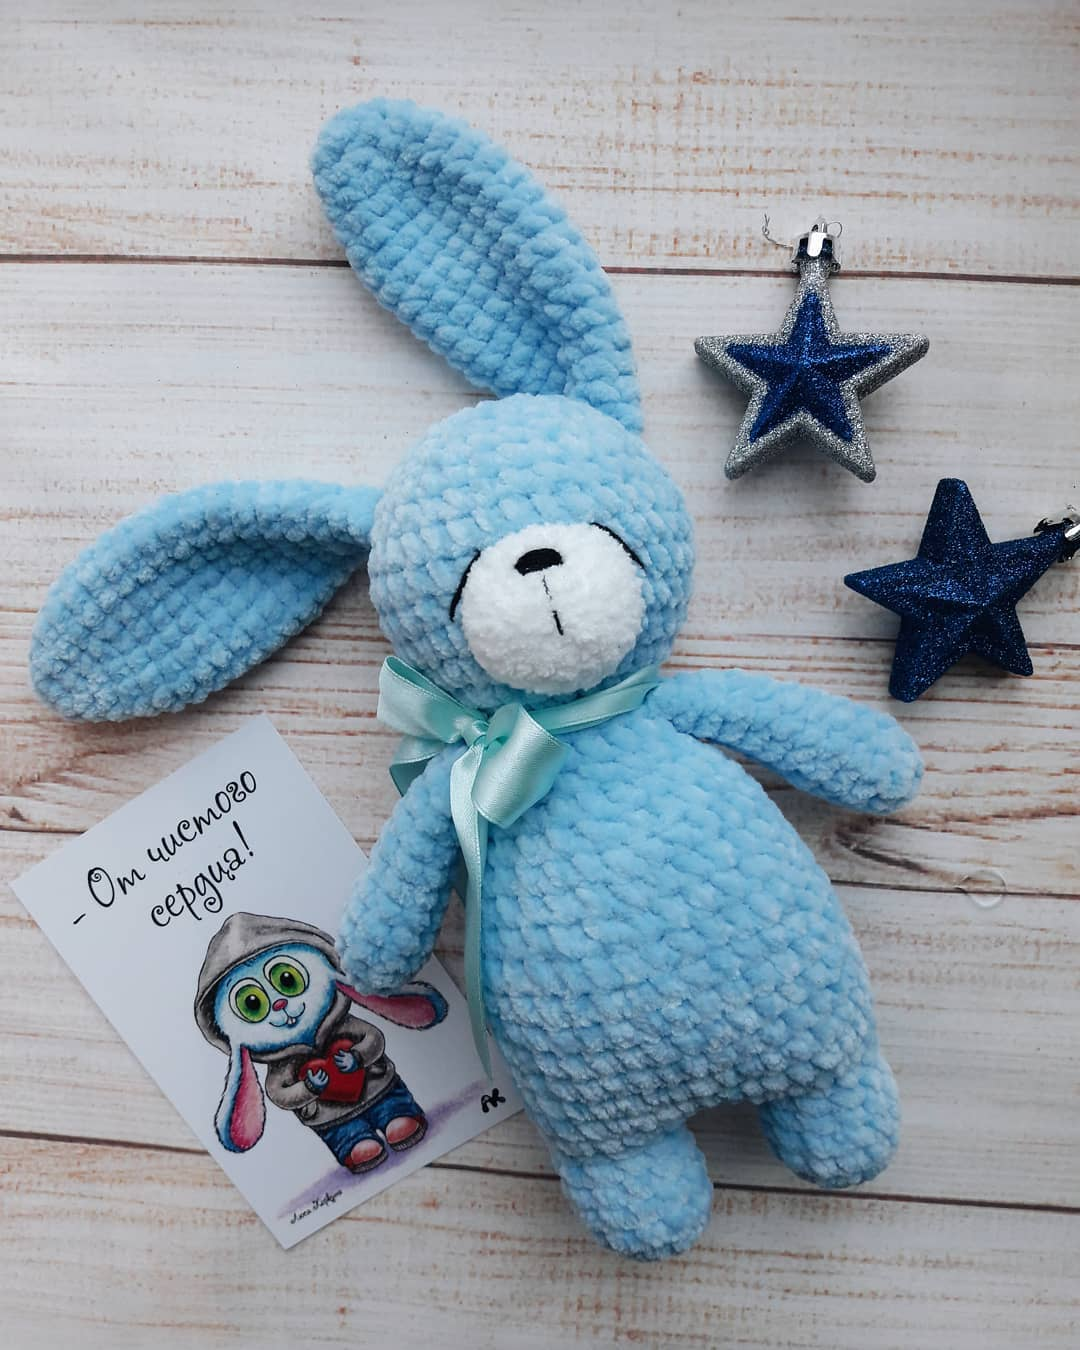 Crochet bunny amigurumi from plush yarn